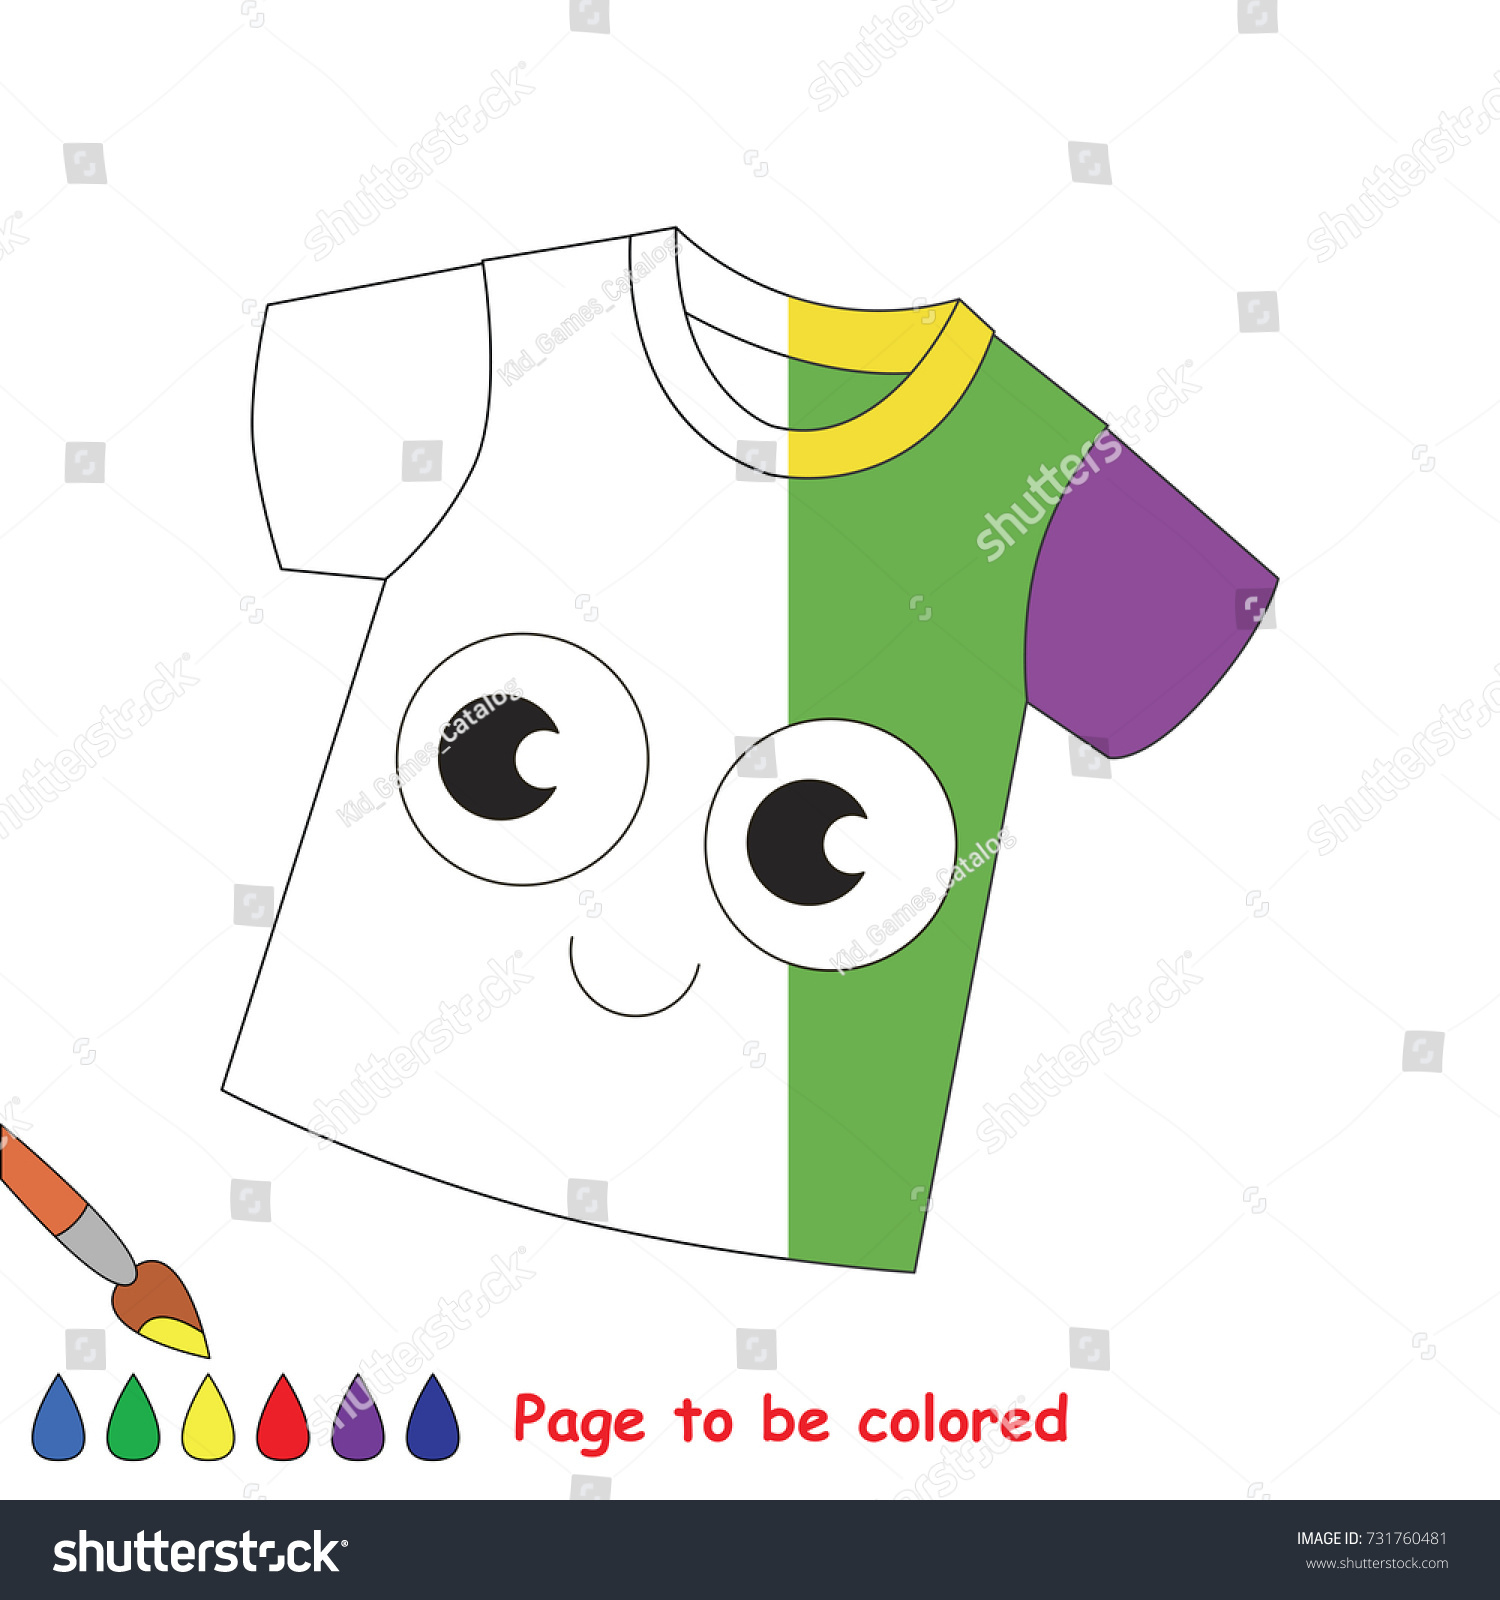 Green Funny Tshirt Coloring Book Educate Stock Vector 731760481 ...